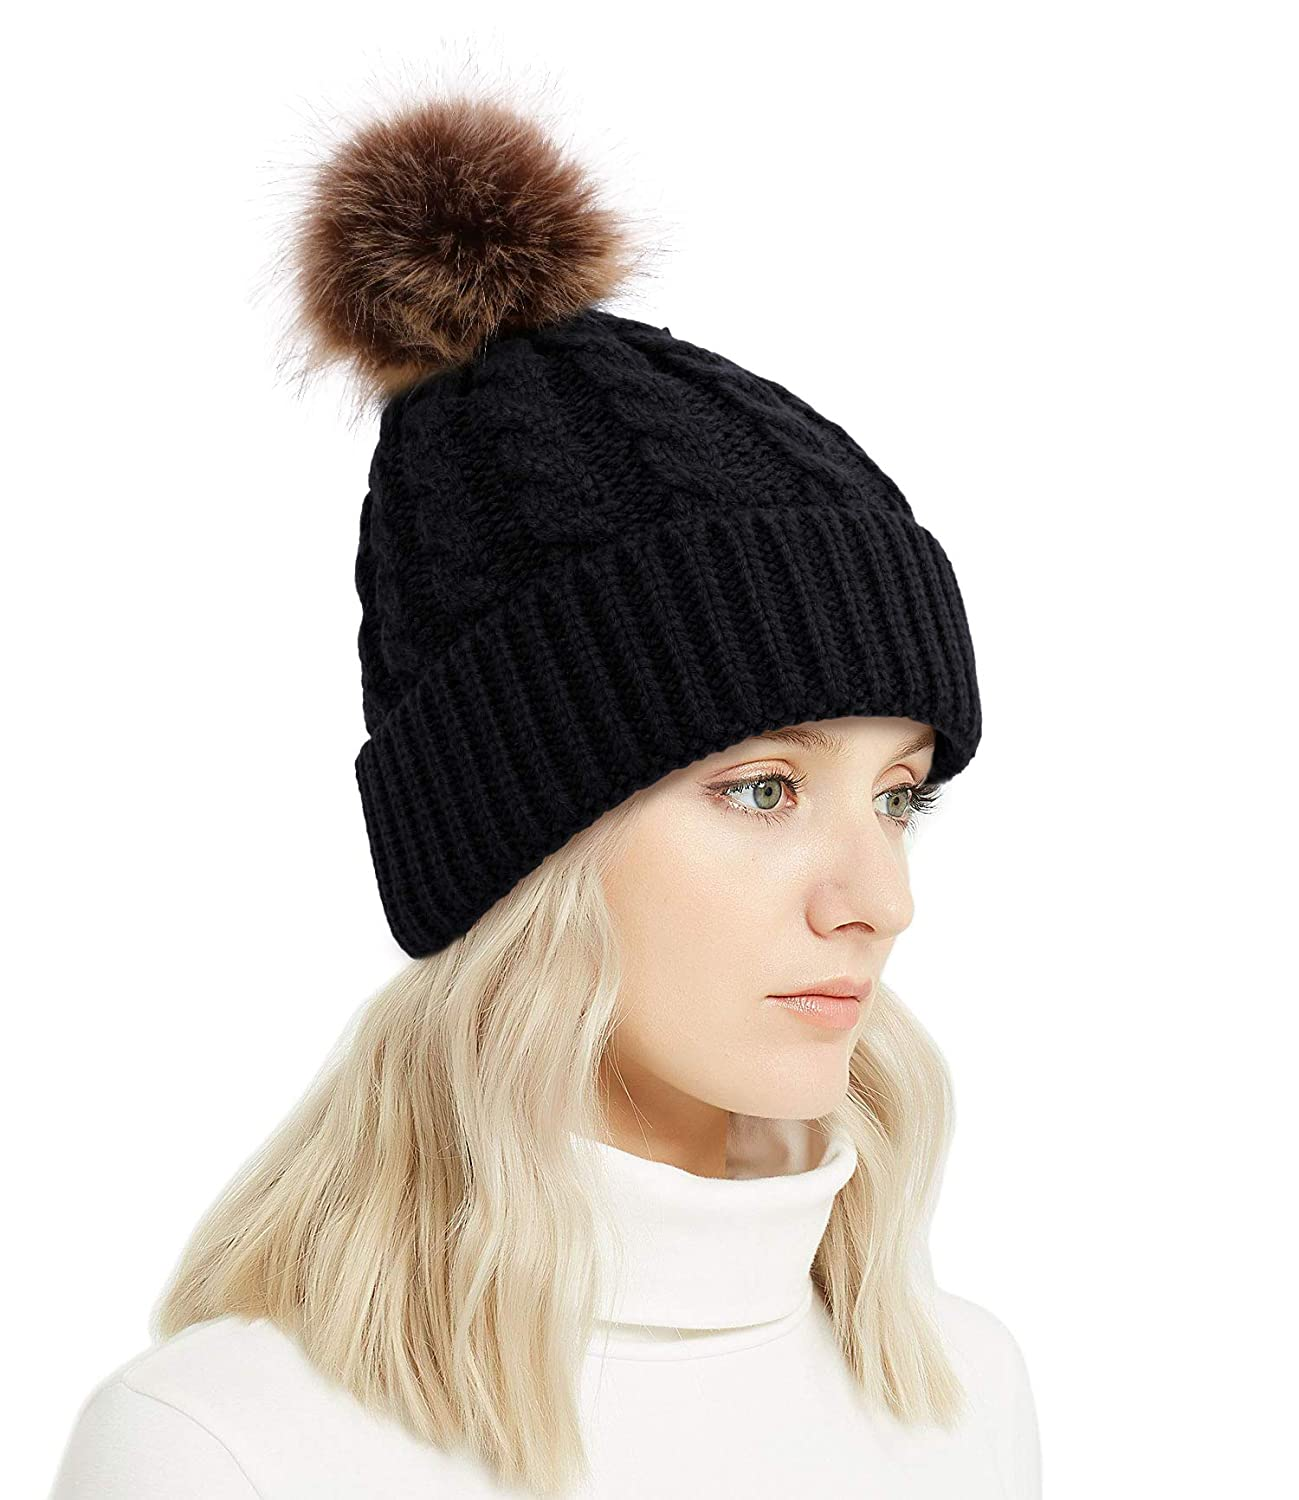 b32637860 Lullaby Winter Rib-Knit Beanie Chunky Baggy Hat for Women Snow Cable Knit  Skull Ski Cap with Faux Fur Pompom